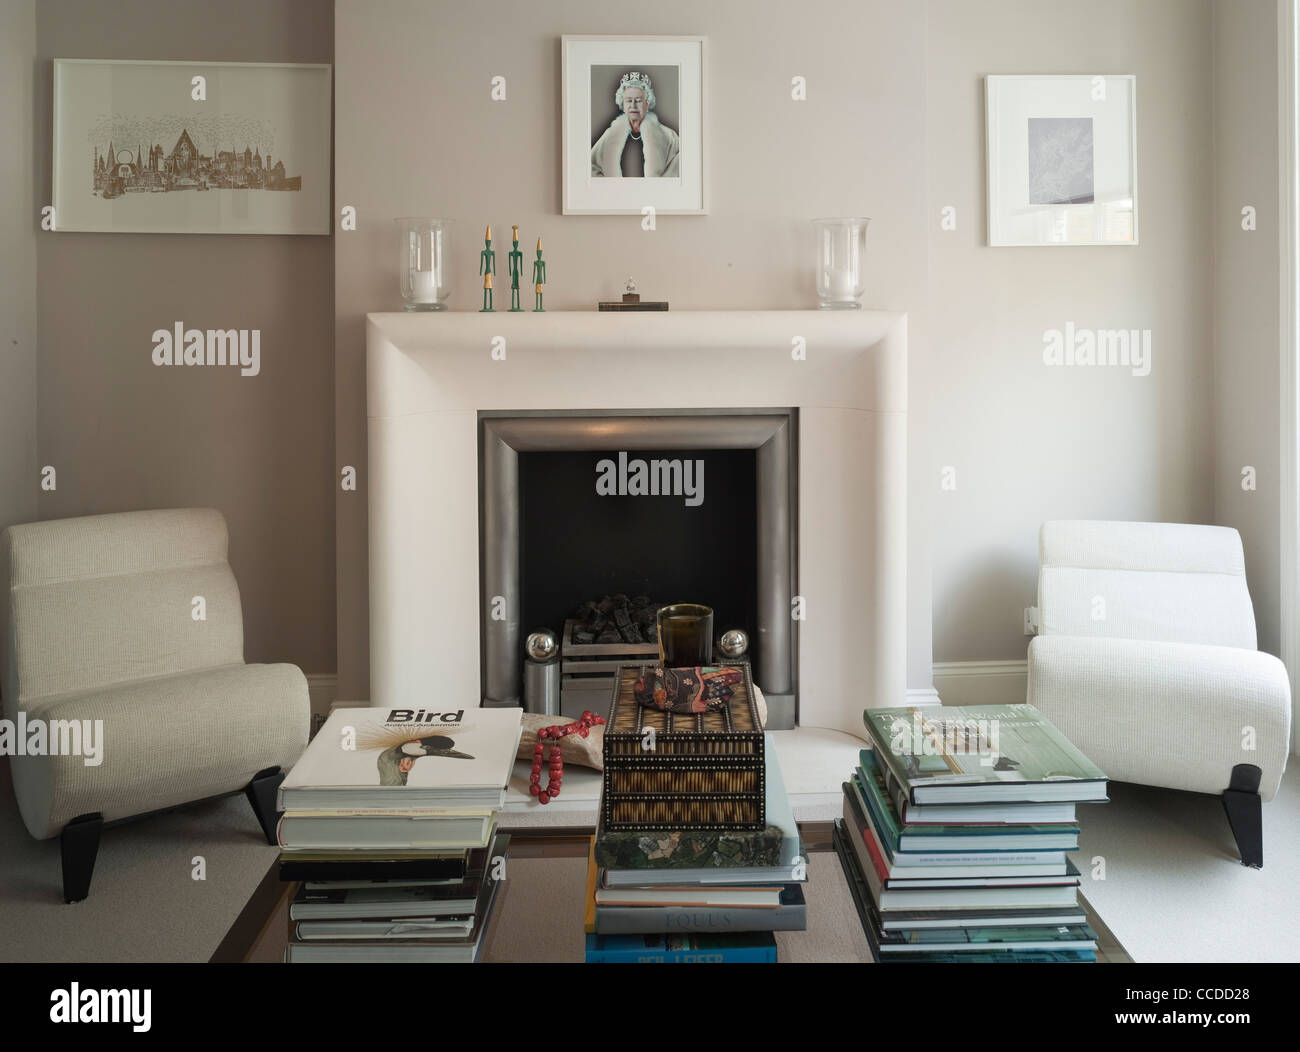 Private house, Westarchitecture, Central London, 2008 Second floor drawing room fire place - Stock Image